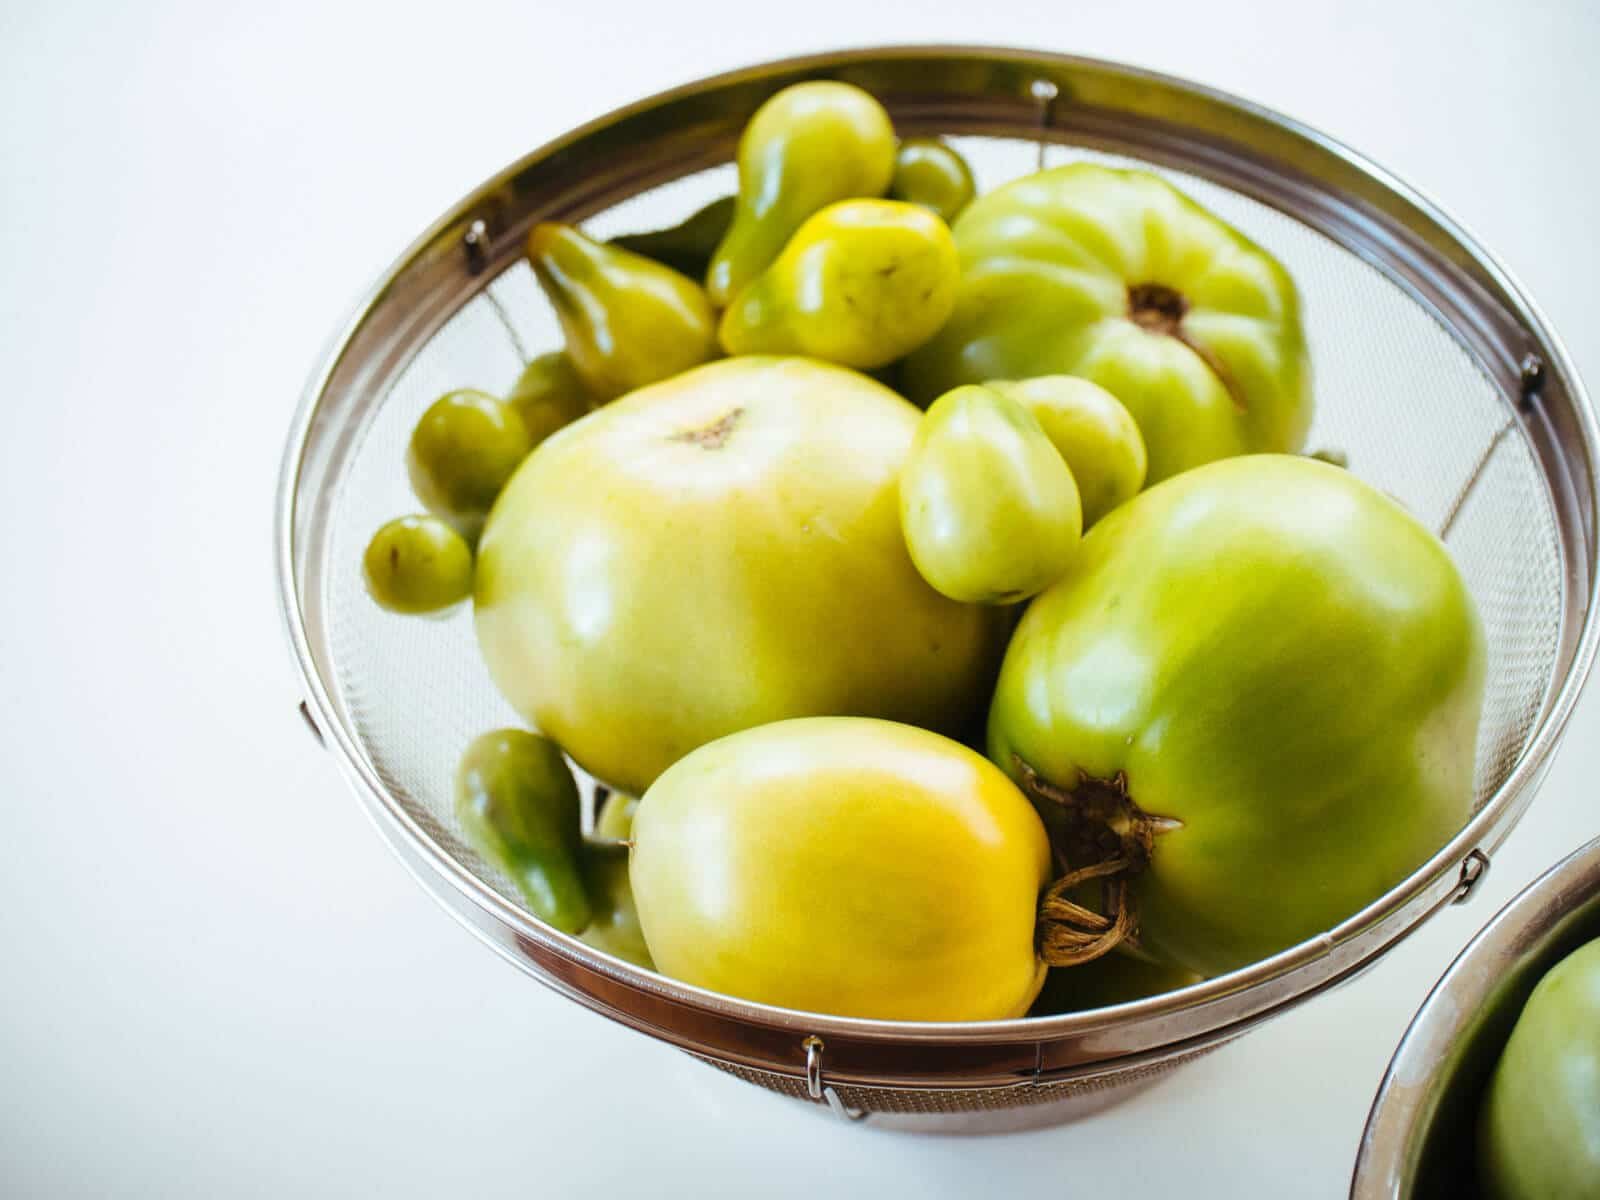 Funnel in tomatoes and pack jars tightly